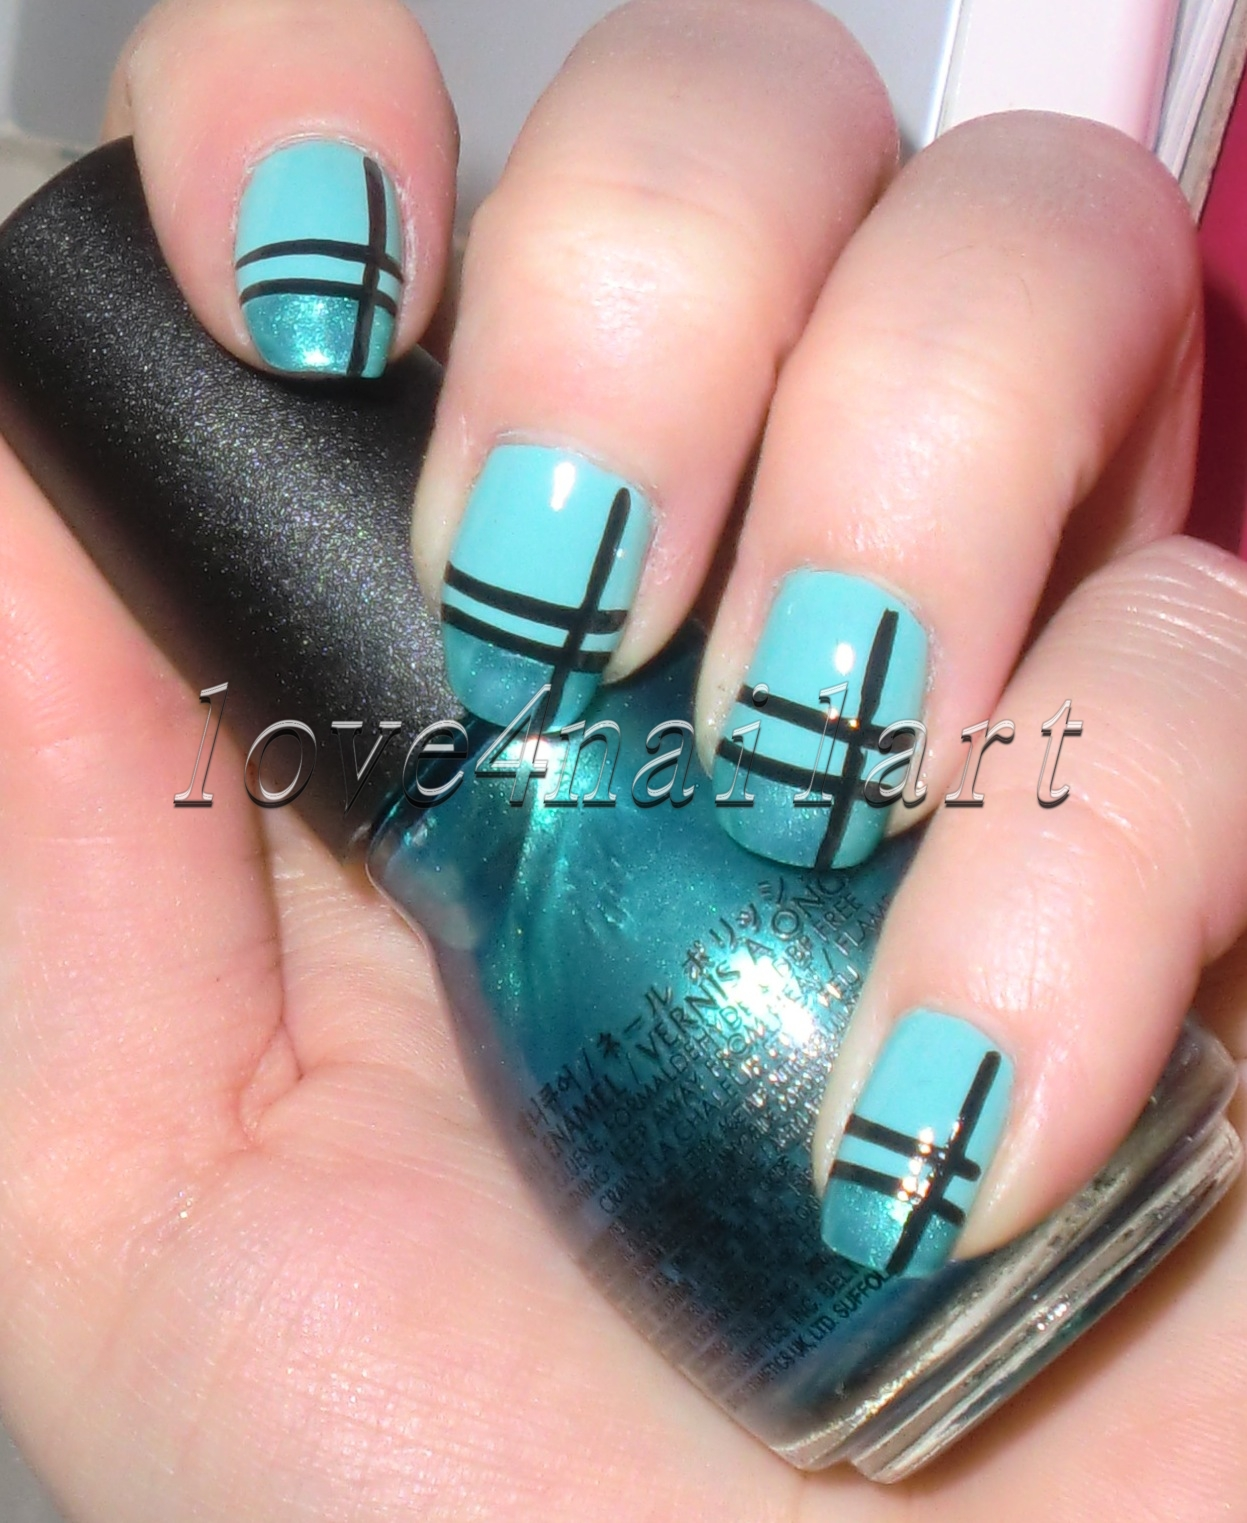 Love4NailArt: Striped Turquoise Nail Art Tutorial 4 Beginners